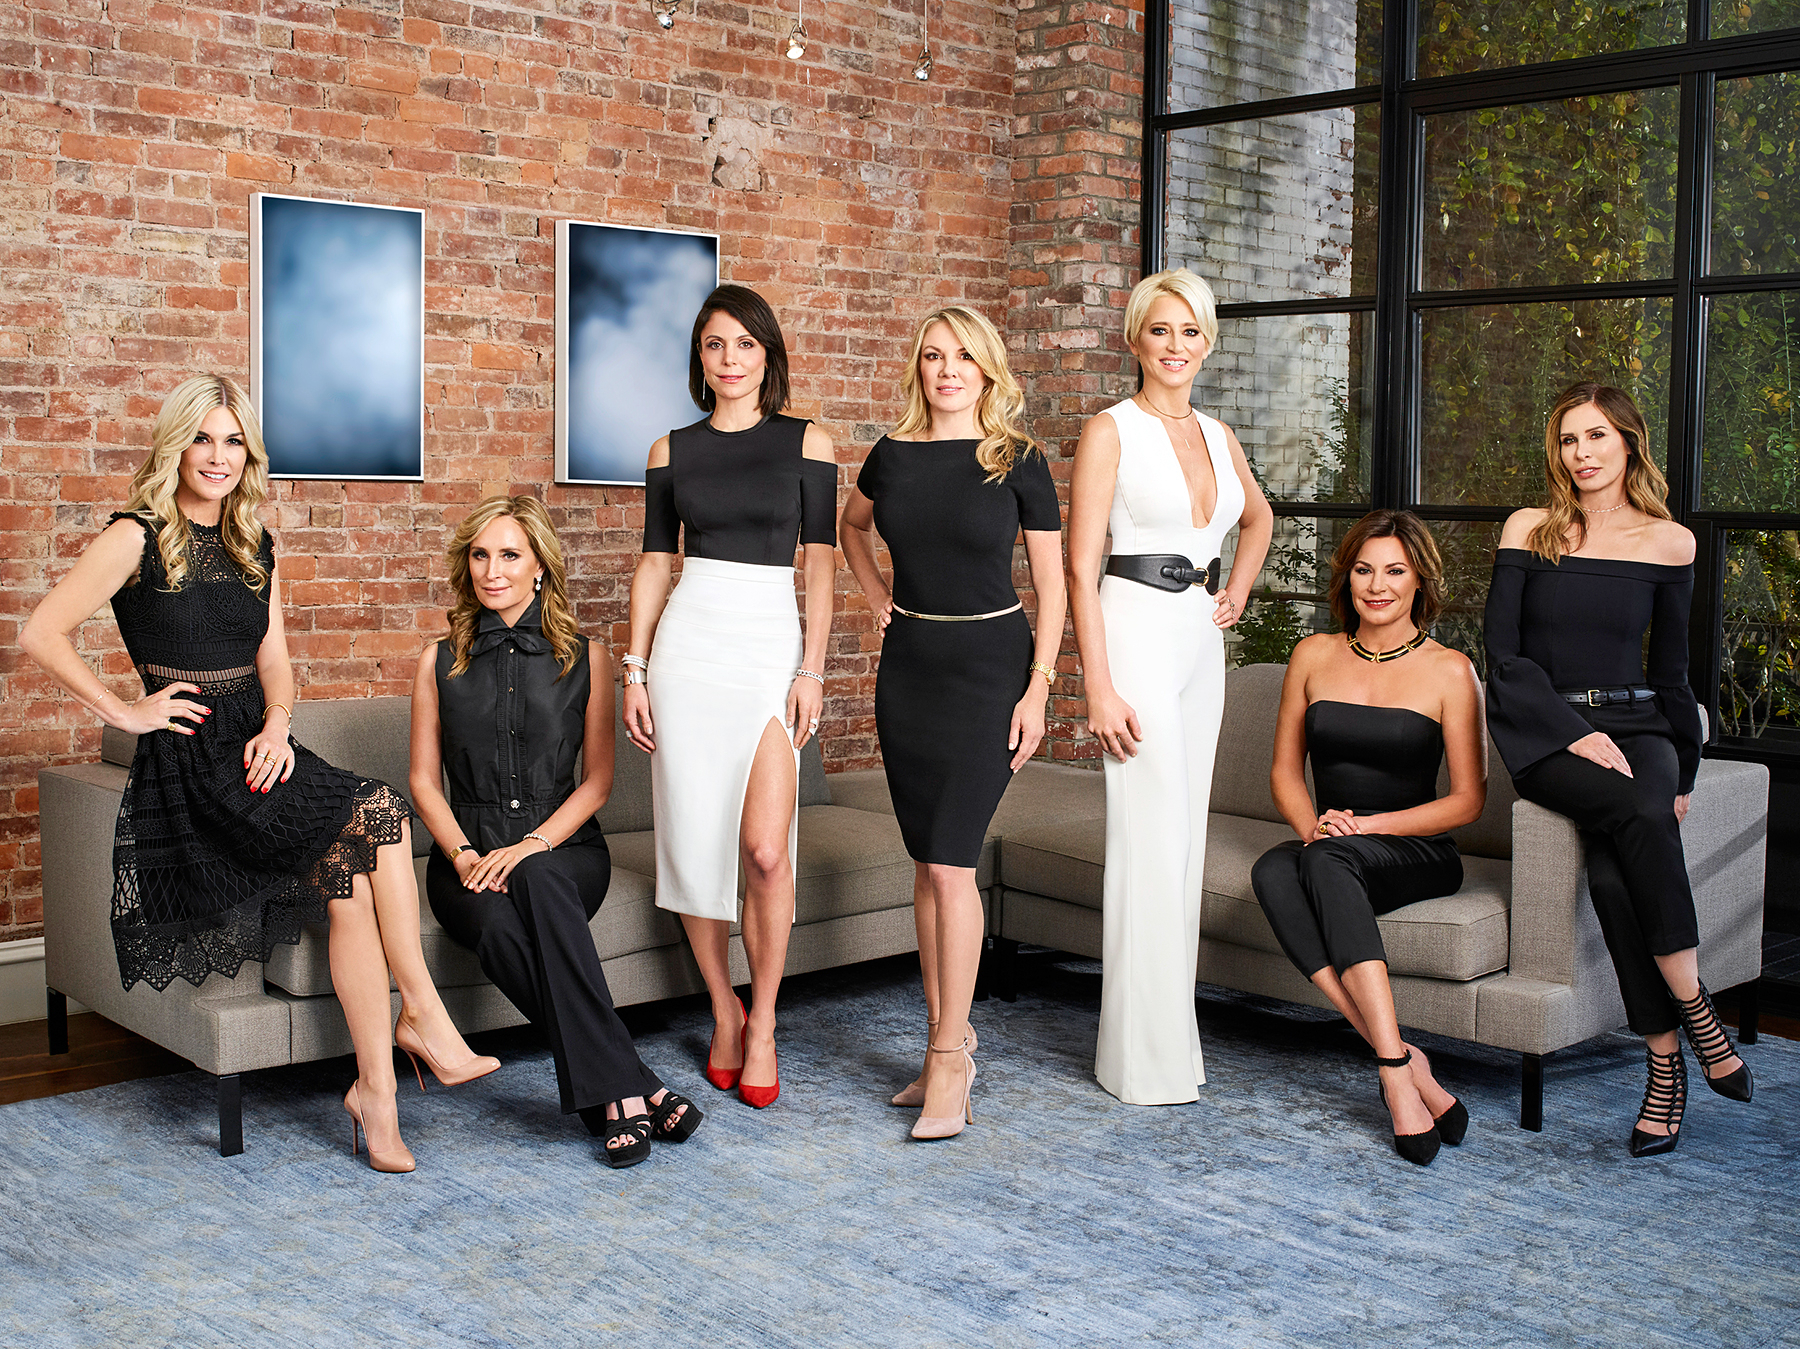 Tinsley Mortimer, Sonja Morgan, Bethenny Frankel, Ramona Singer, Dorinda Medley, Luann D'Agostino, Carole Radziwill The Real Housewives of New York RHONY